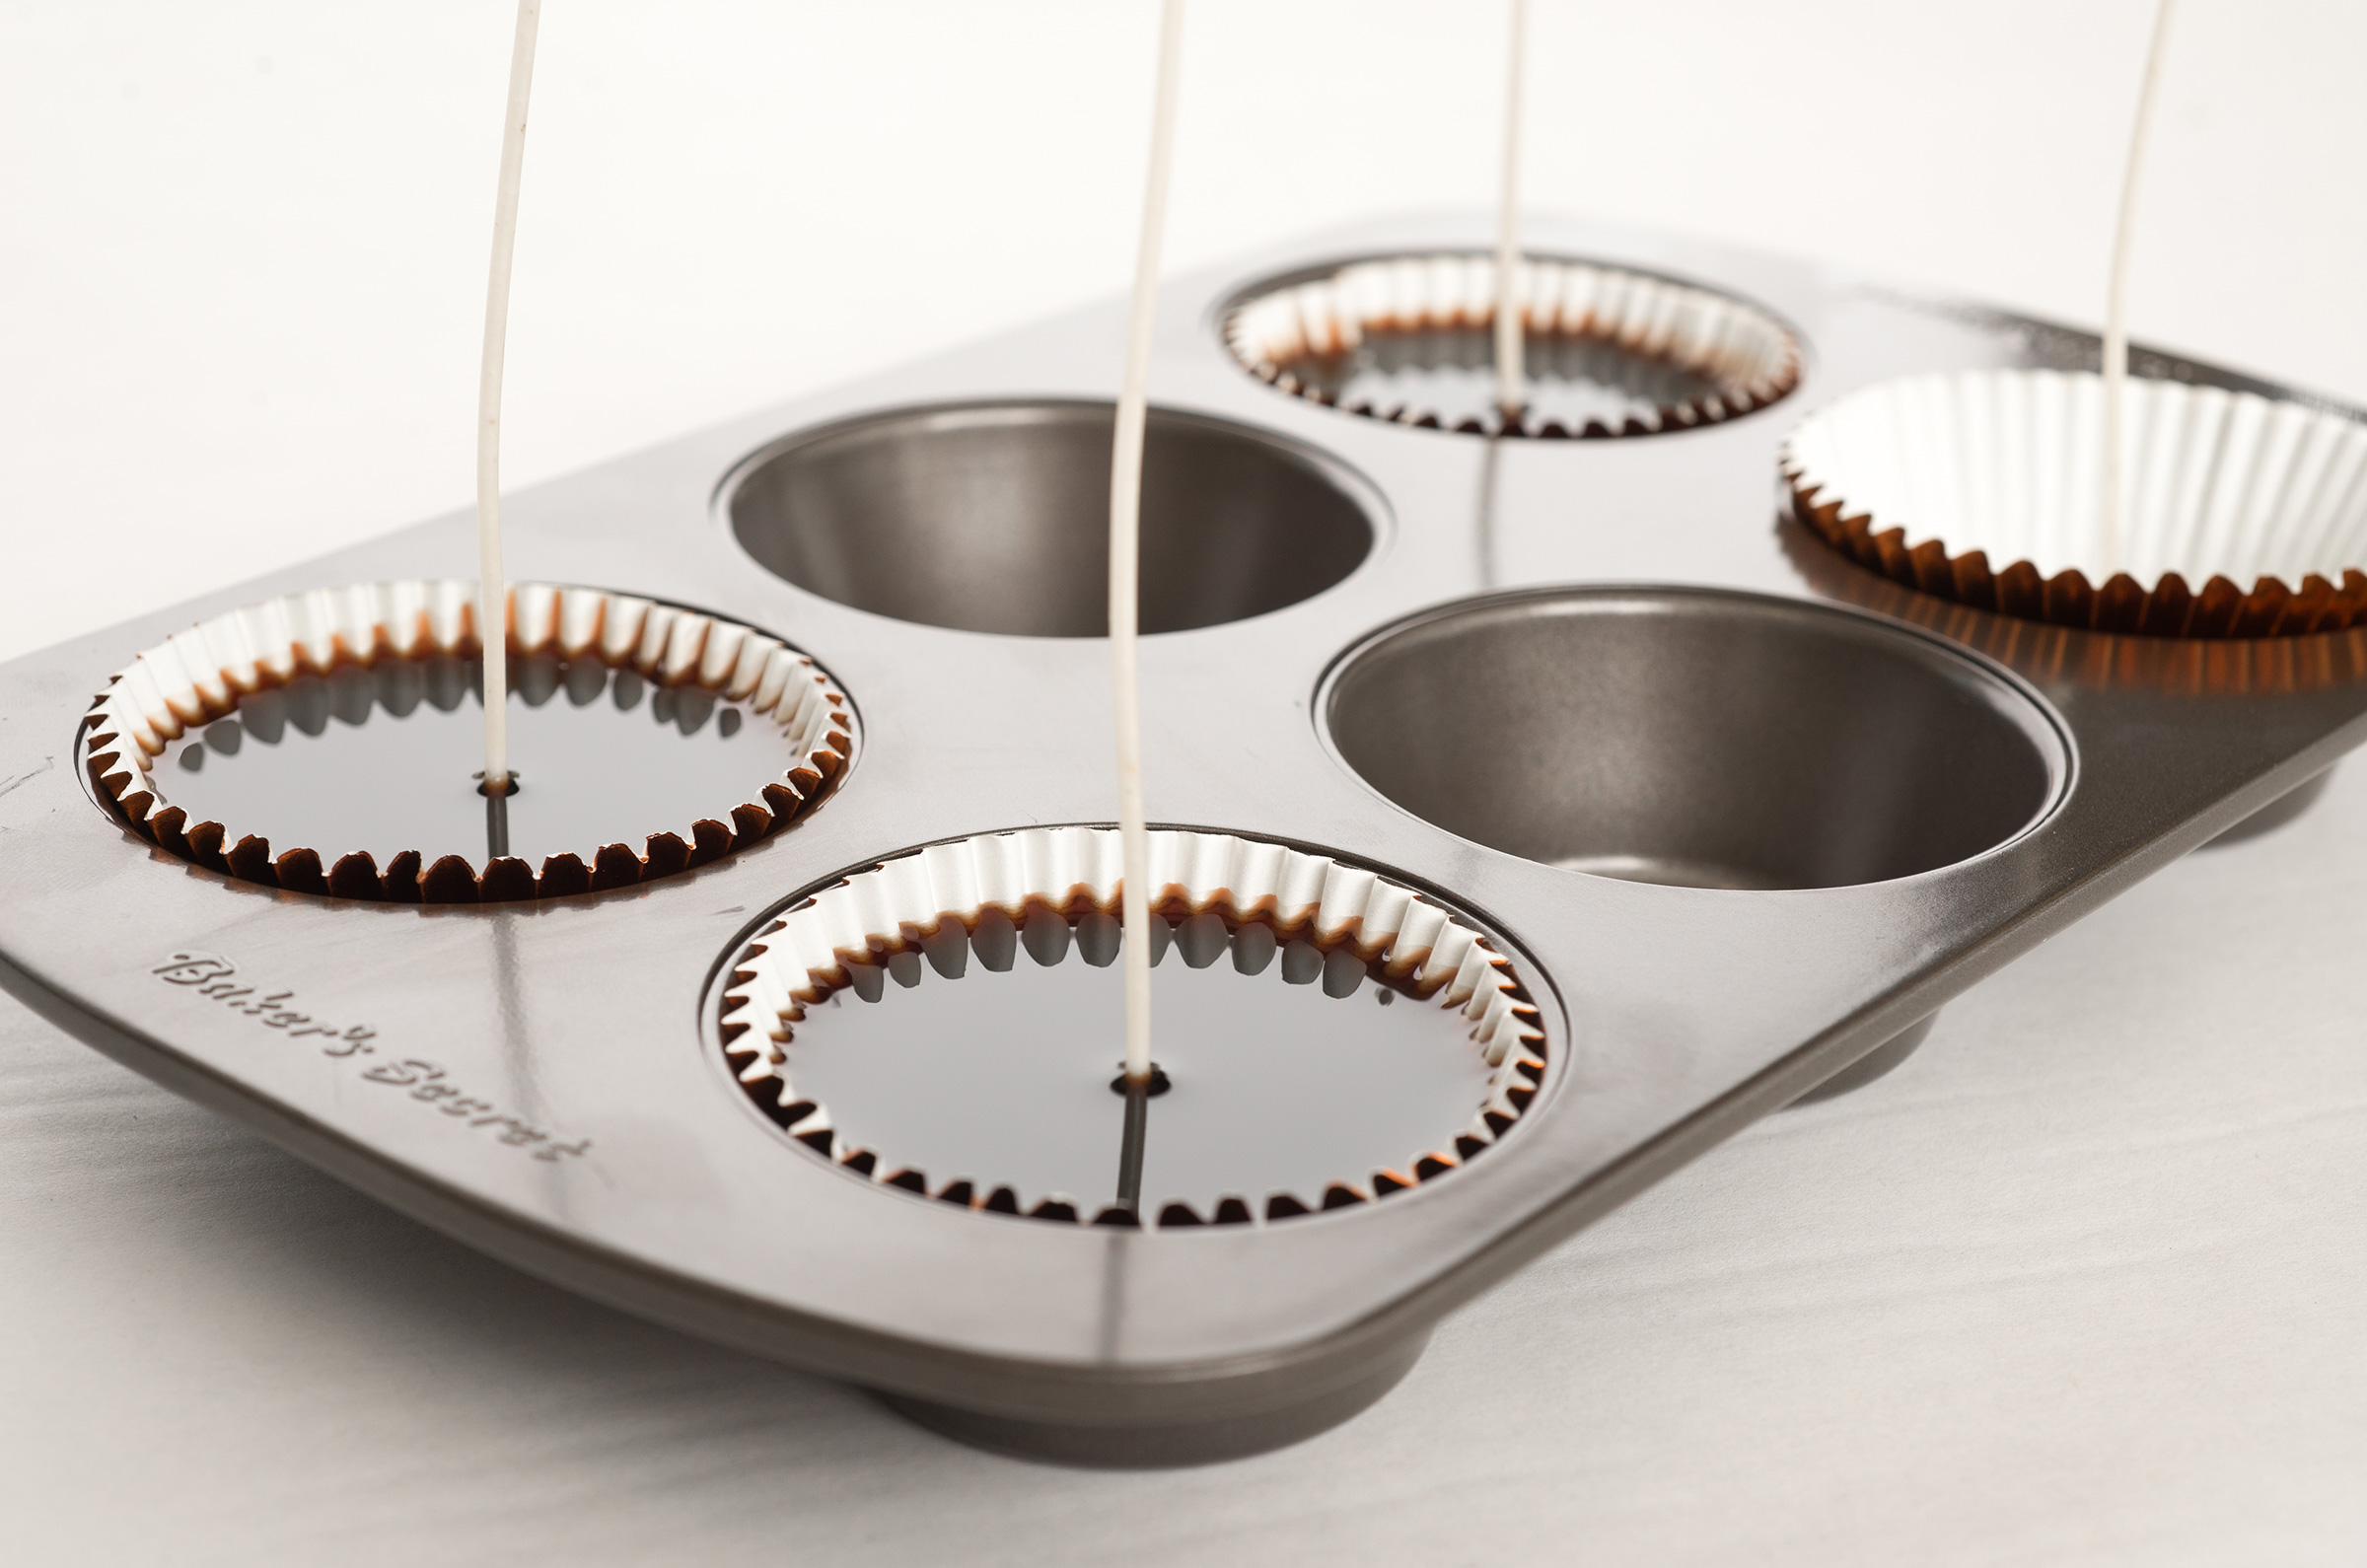 wax filled cupcake liners